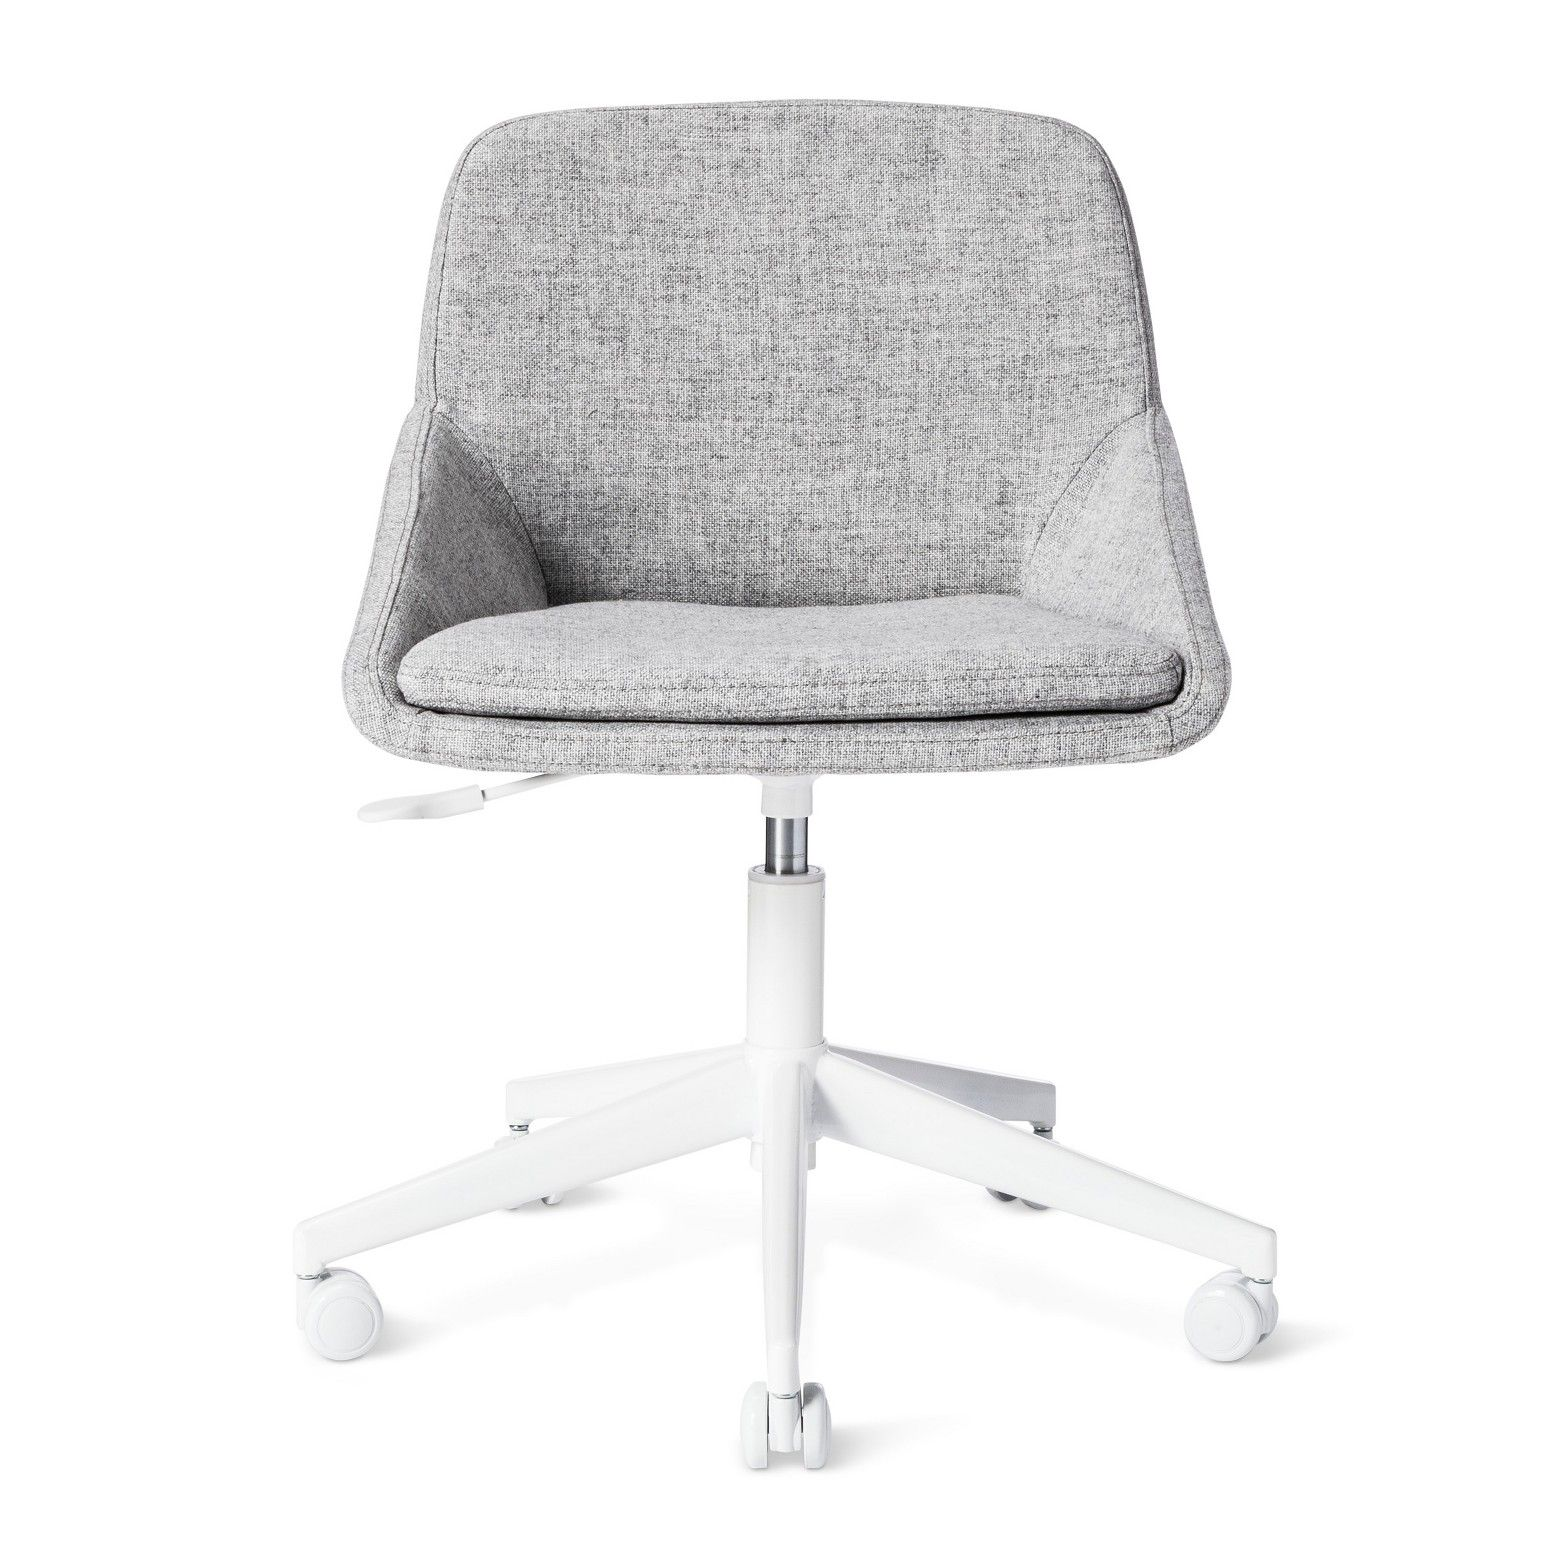 Target Expect More Pay Less Grey Desk Chair Desk Chair Chair